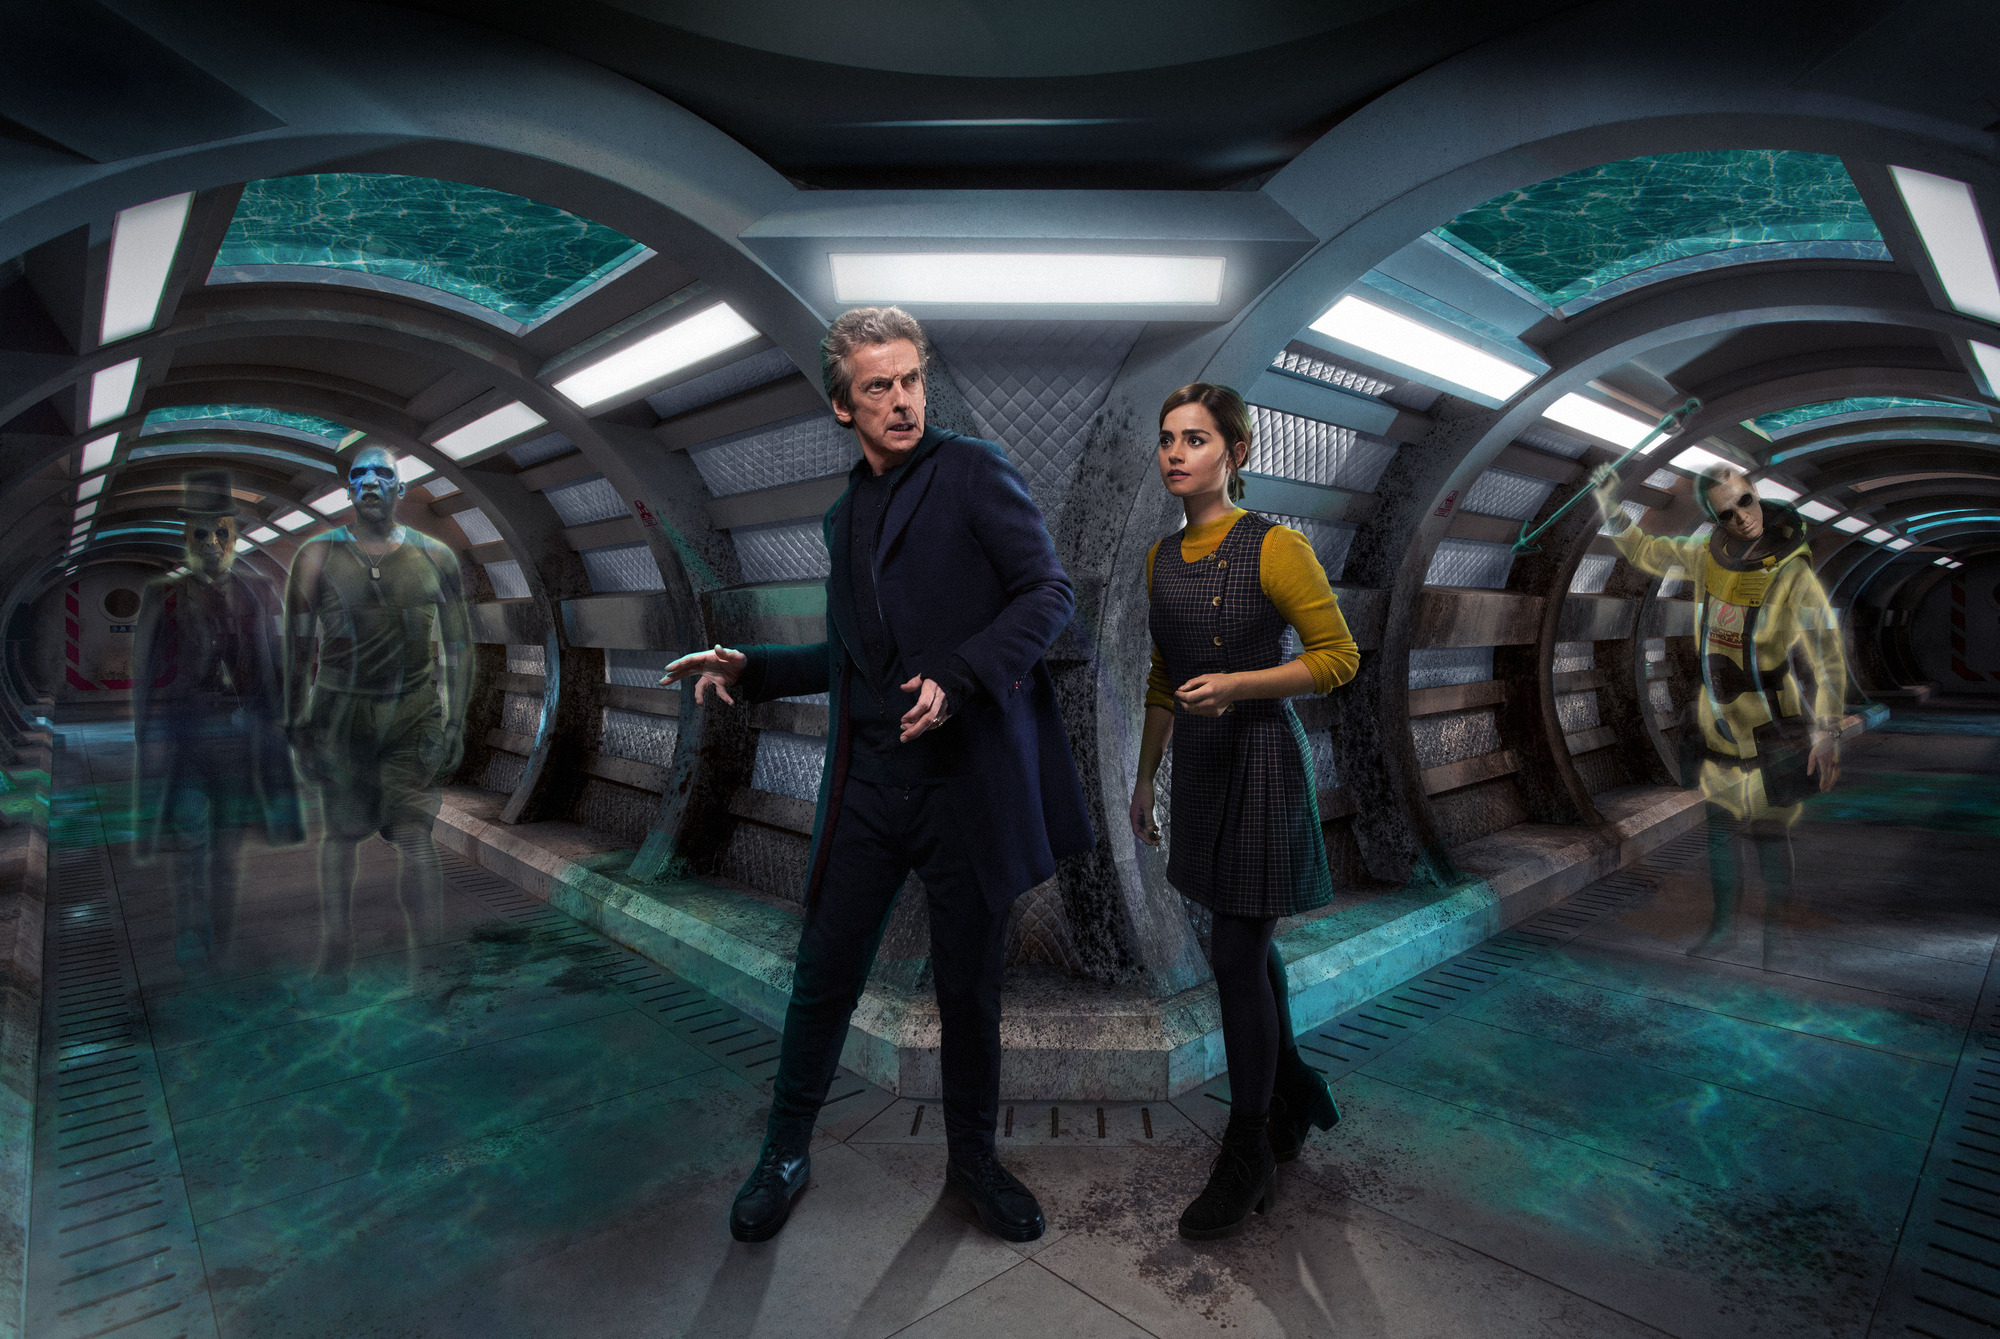 Doctor Who, series 9, episode 3, After the lake by Toby Whithouse